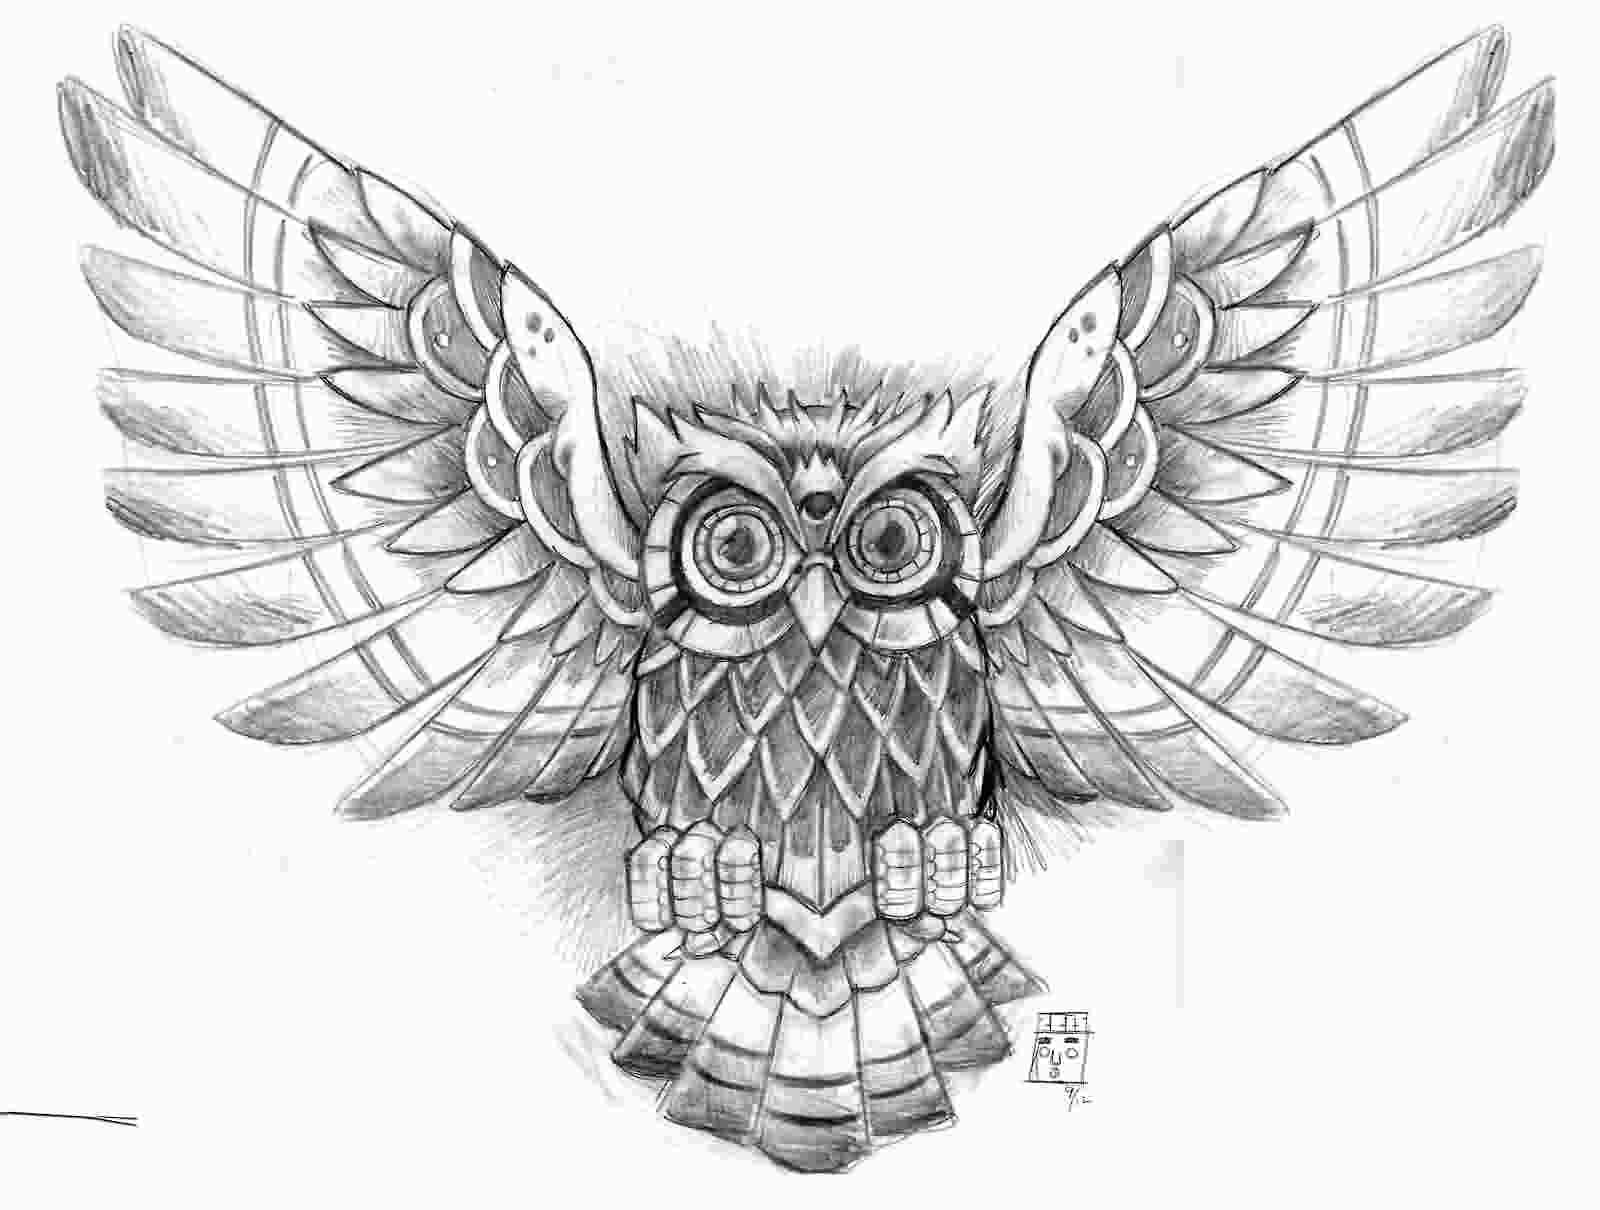 Wing tattoo design - Owl With Open Wings Tattoo Design